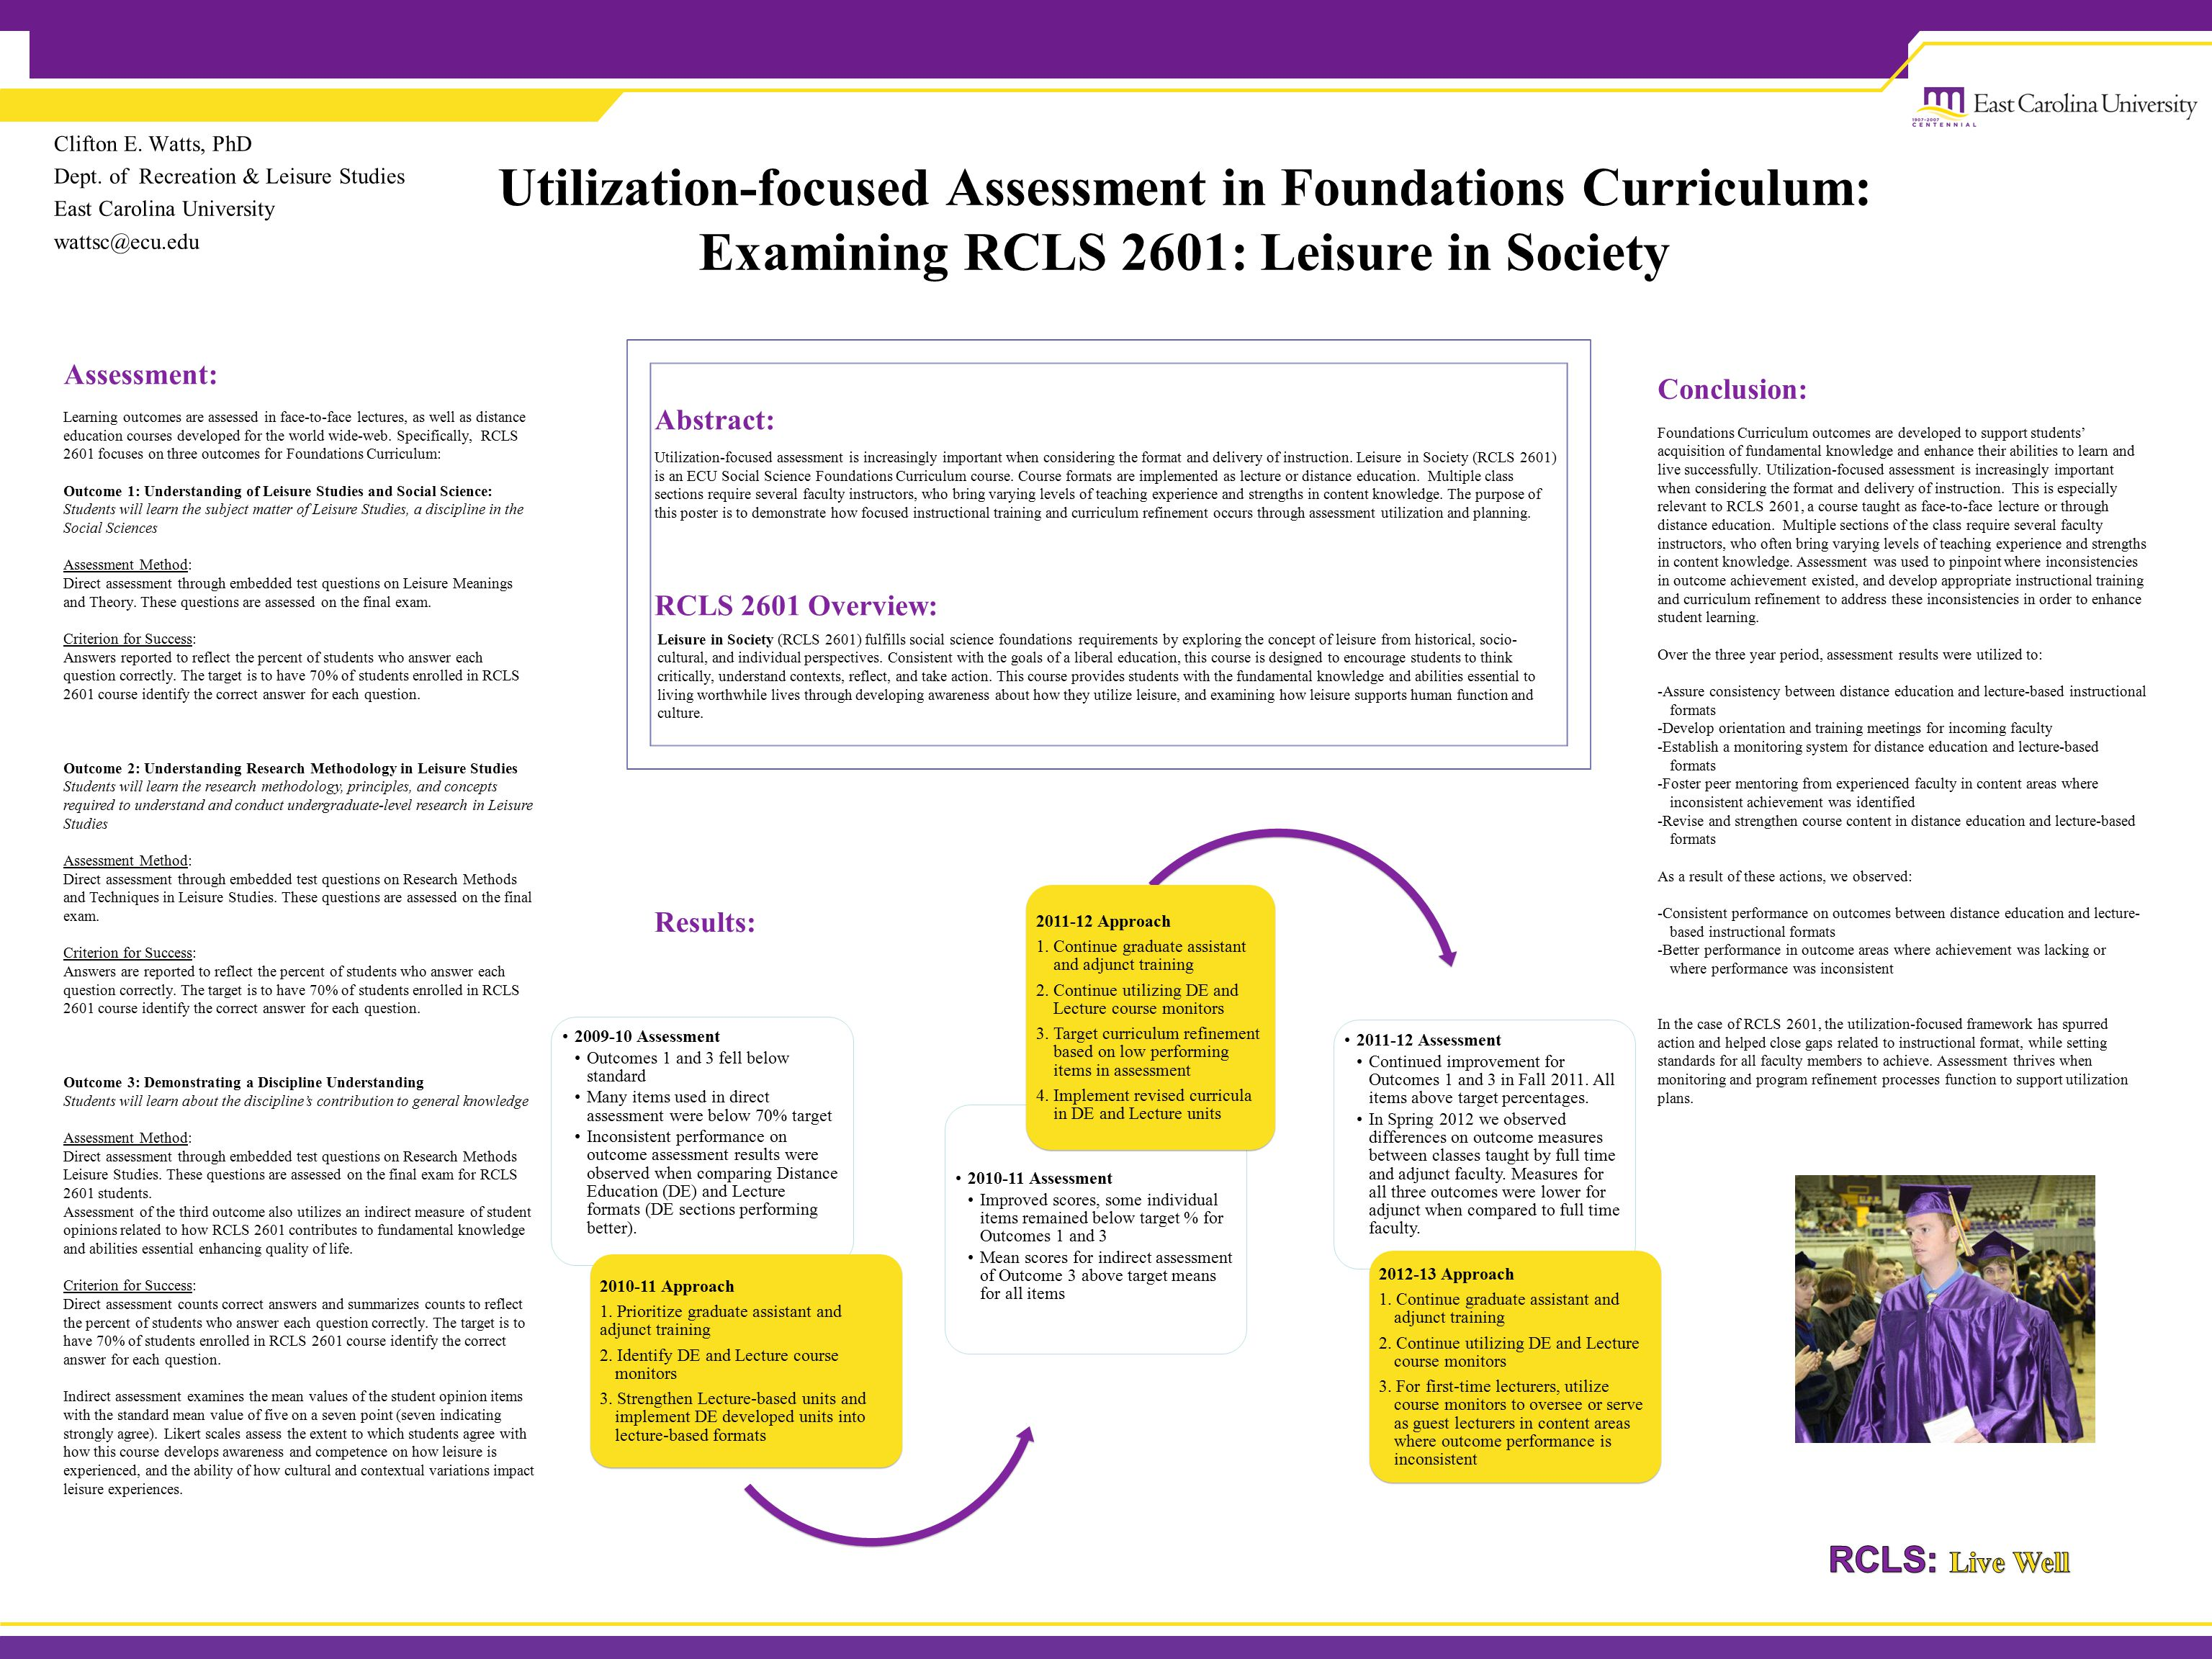 Utilization-focused Assessment in Foundations Curriculum: Examining RCLS 2601: Leisure in Society Clifton E.